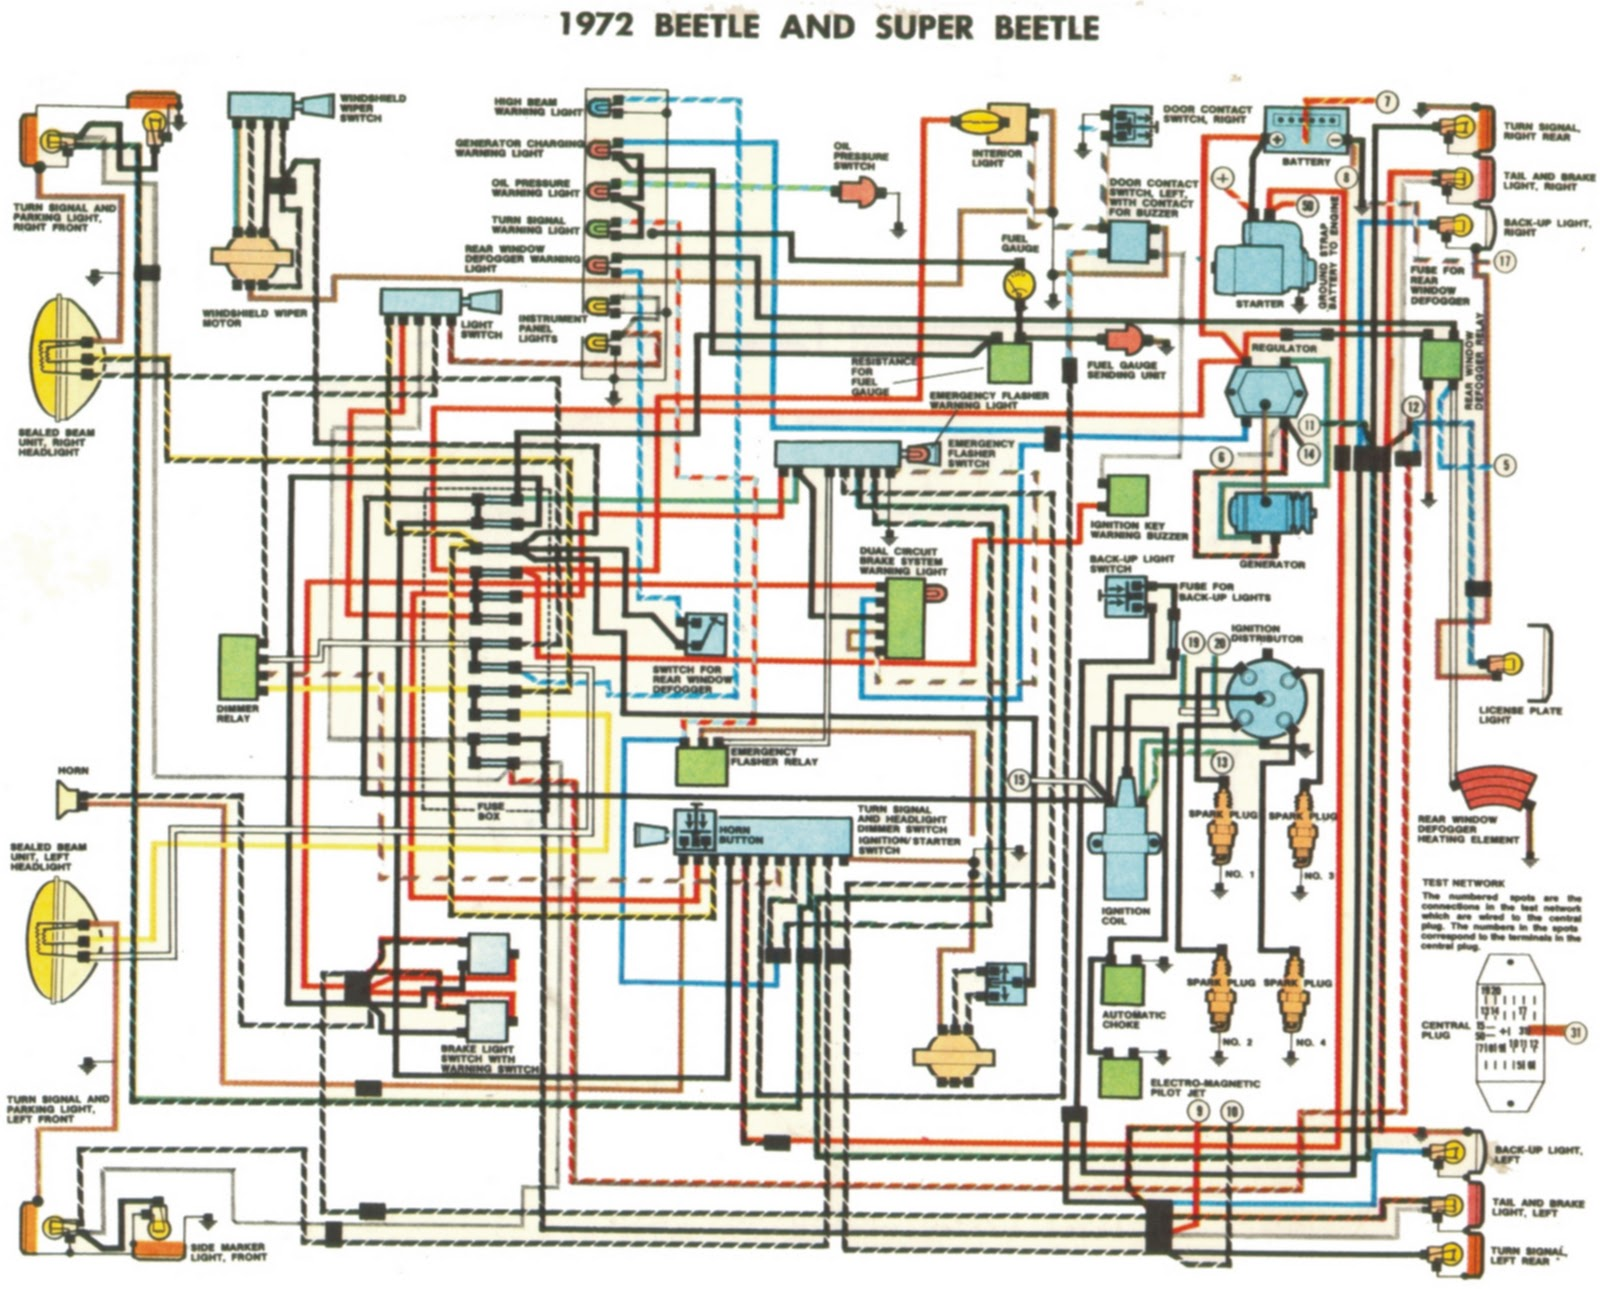 1972 beetle and super beetle wiring diagrams wiring diagram for 1971 vw beetle readingrat net 1972 beetle wiring diagram at bayanpartner.co